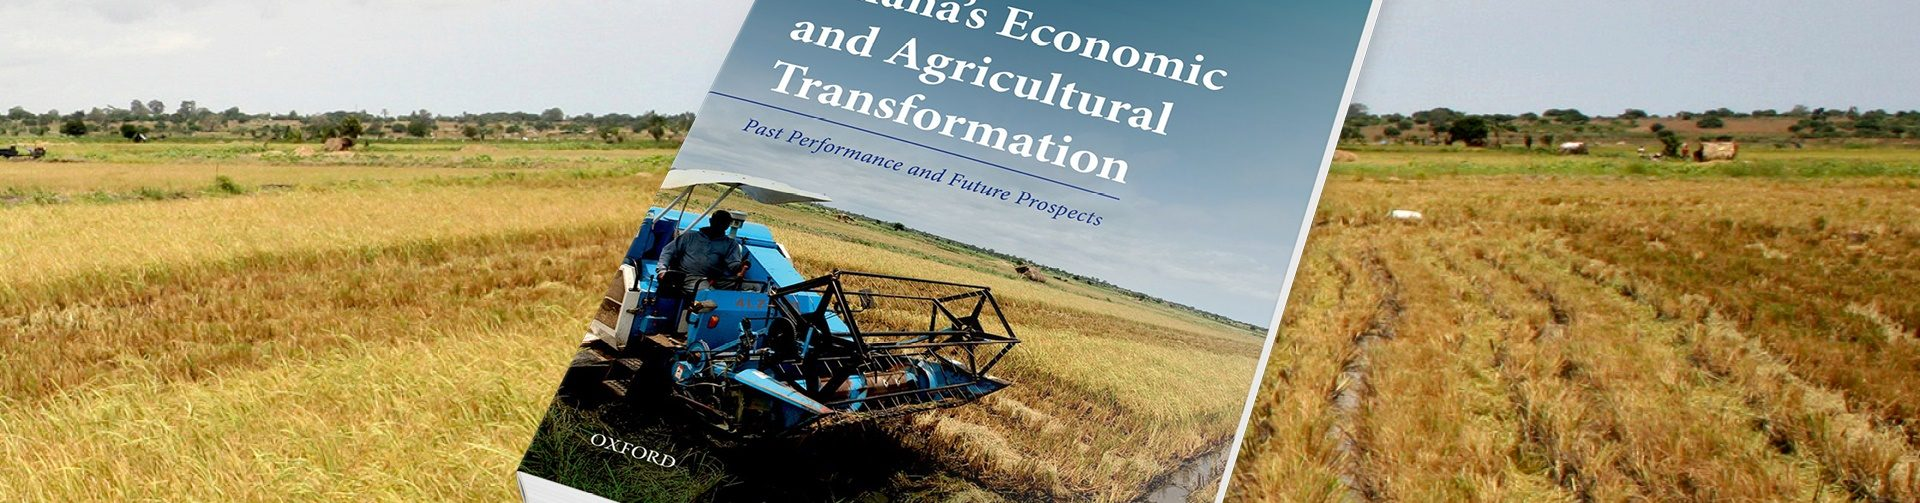 Book launch: Ghana's Economic and Agricultural Transformation: Past Performance and Future Prospects